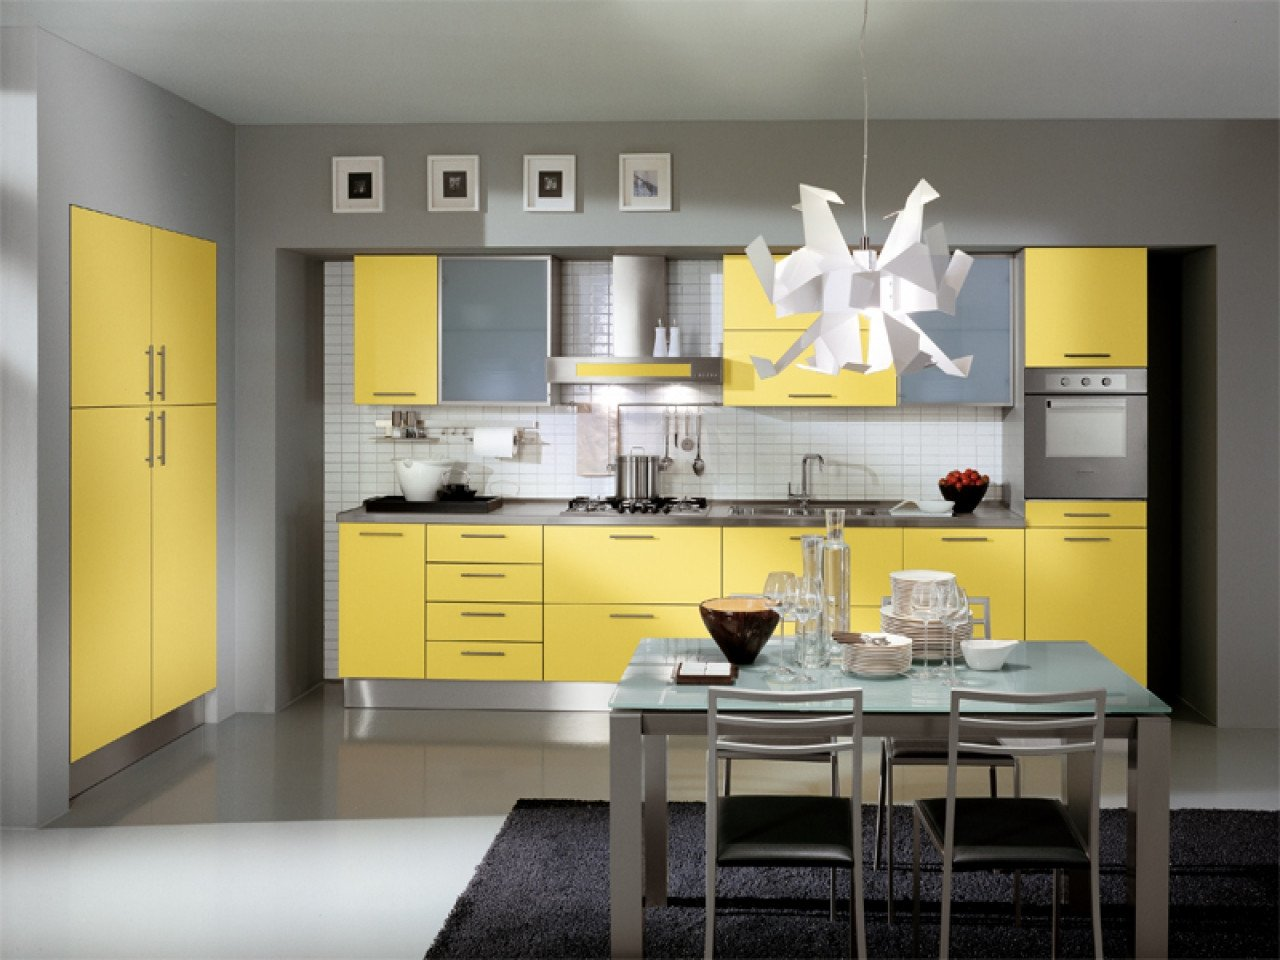 Yellow and Grey Kitchen Decor Lovely Kitchen Decorating Ideas with Red Accents Grey and Yellow Kitchen Ideas Gray Kitchen Cabinets